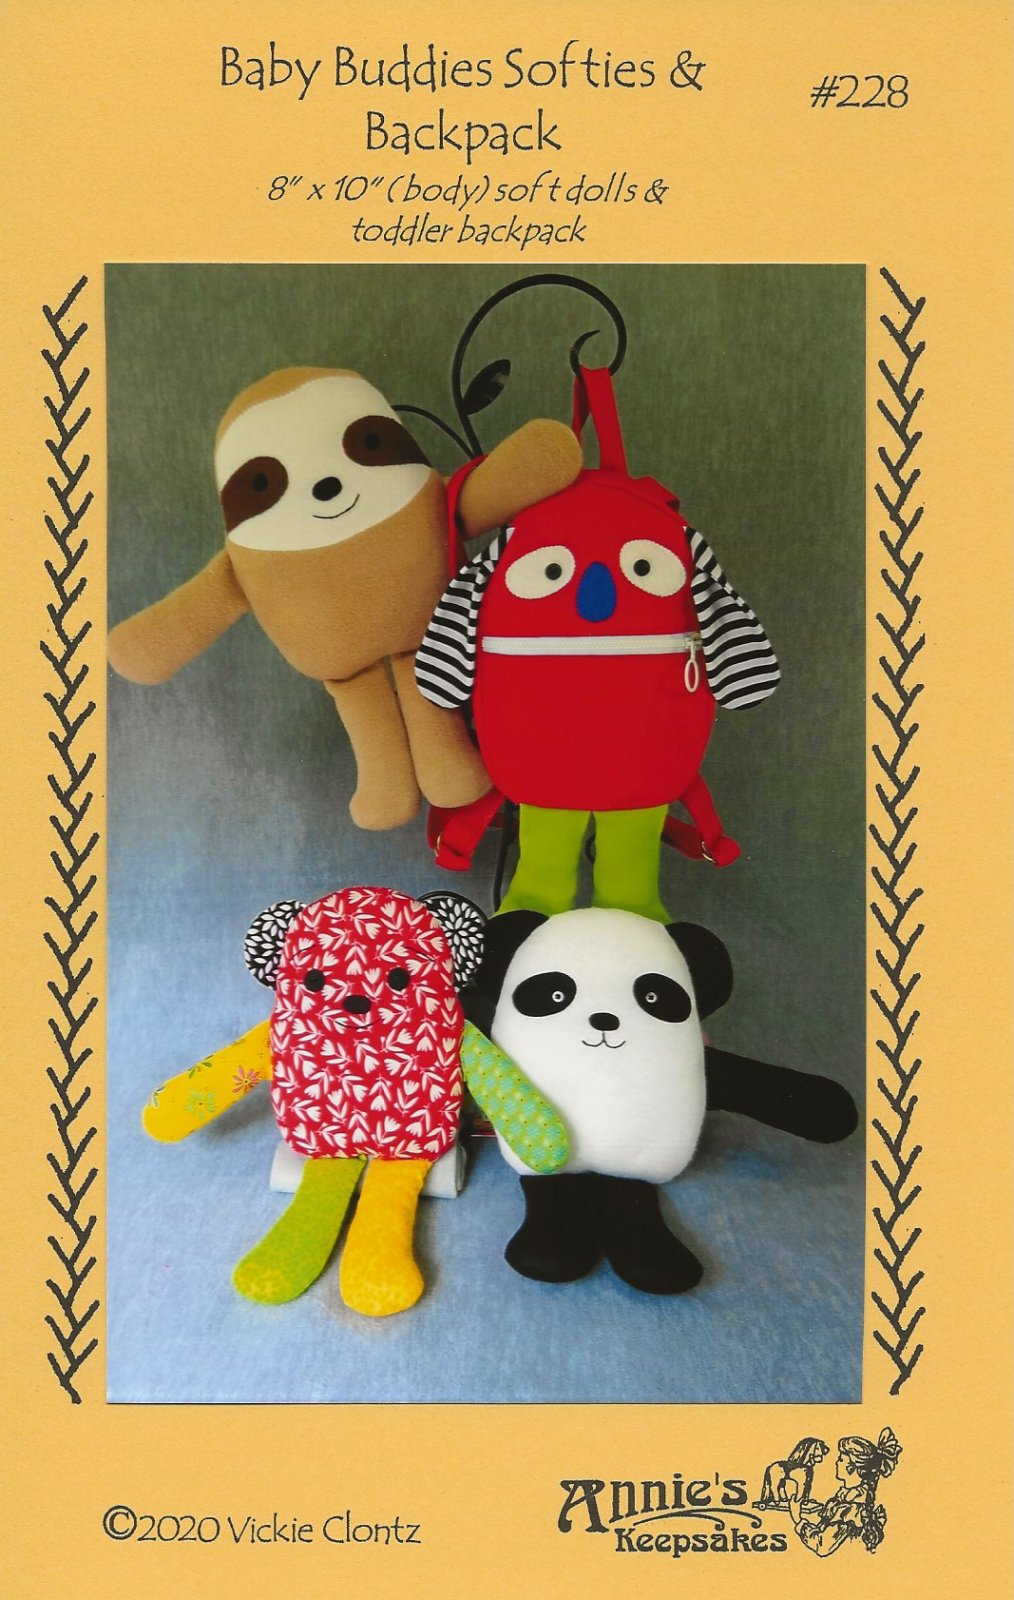 Baby Buddies Softies & Backpack